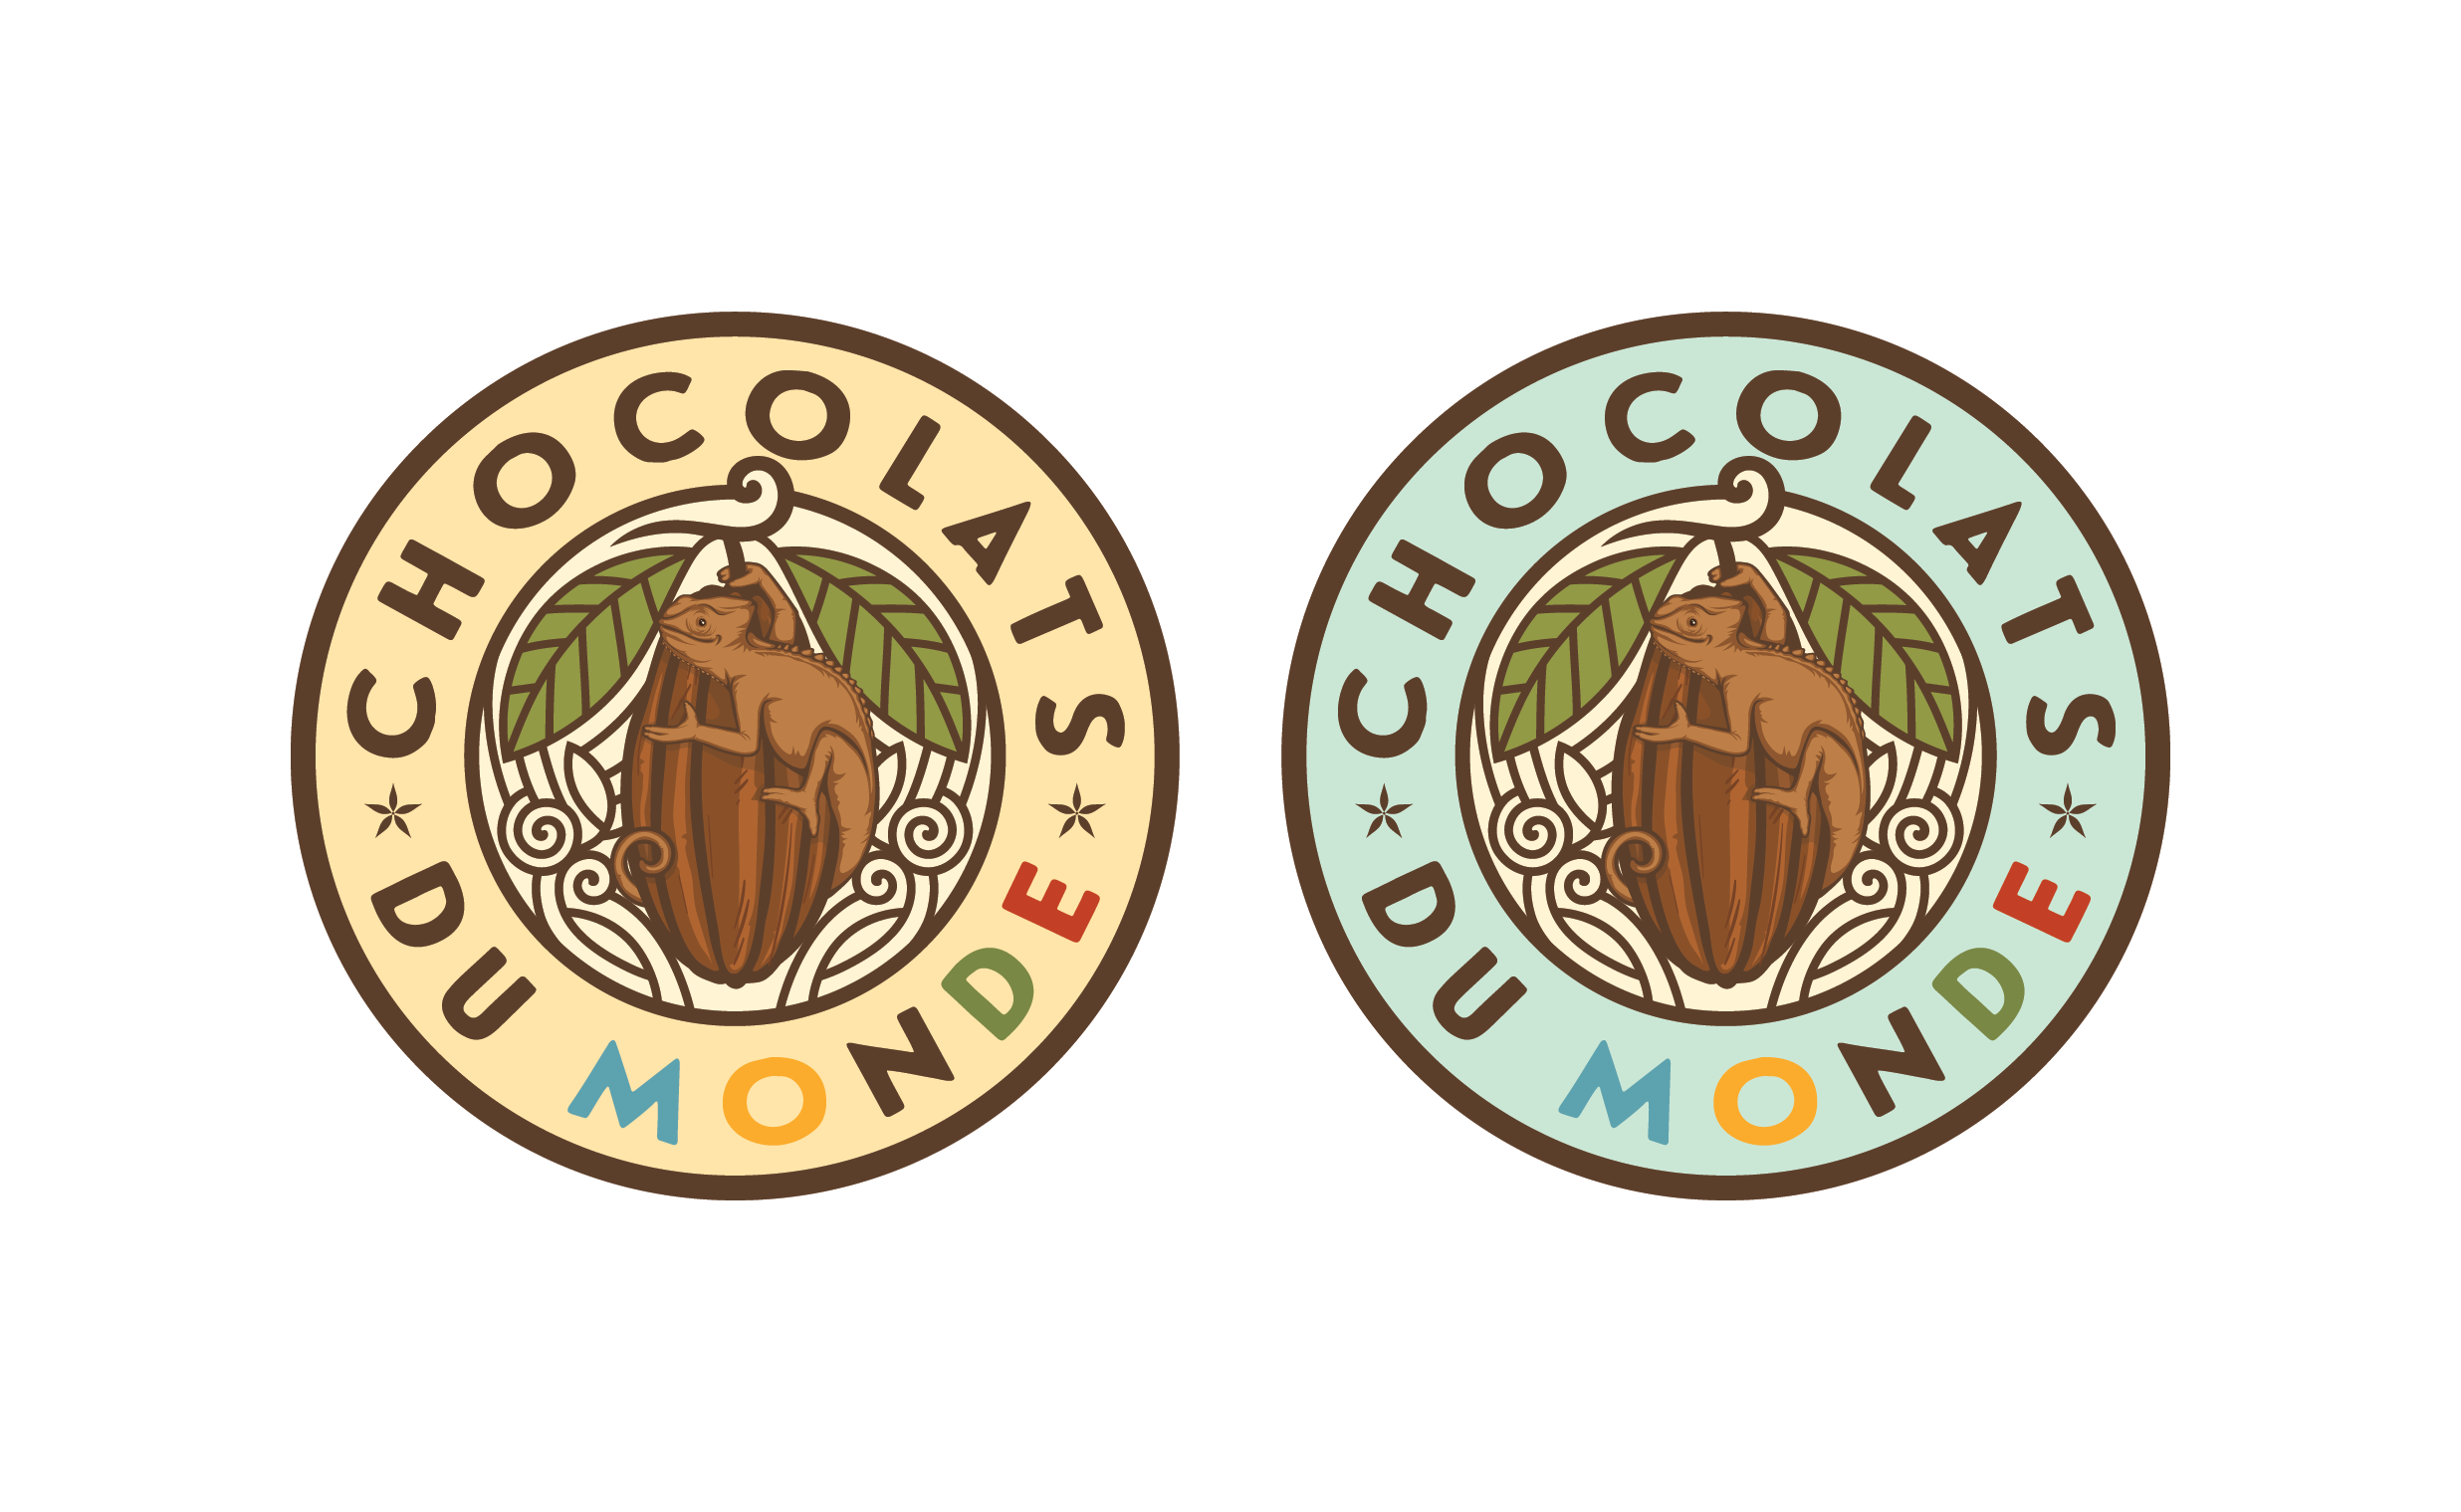 Create the logo of a chocolate shops franchise